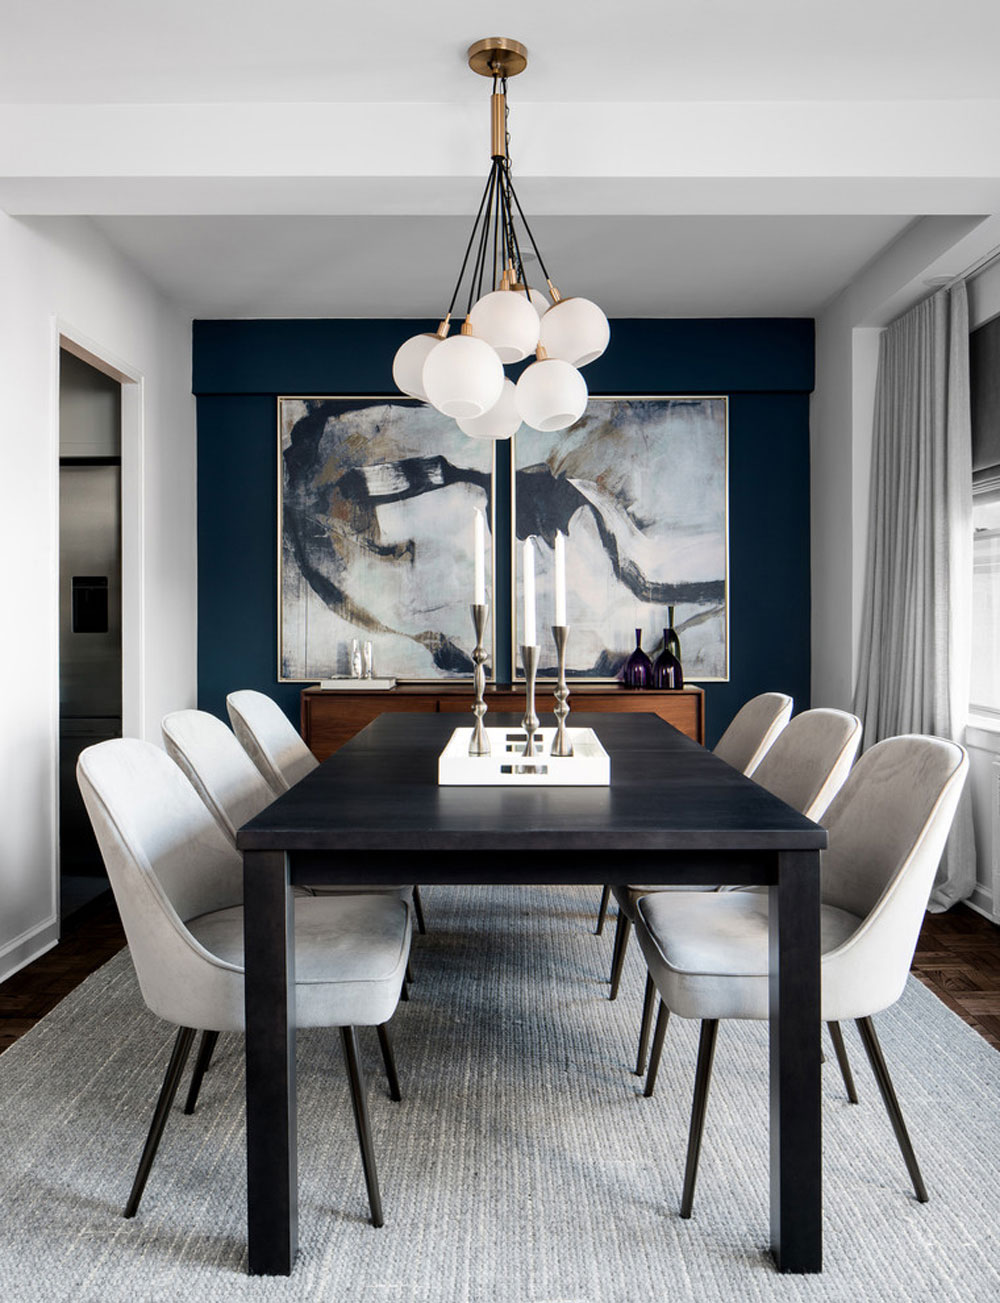 Dining room wall decor ideas that will impress your guests